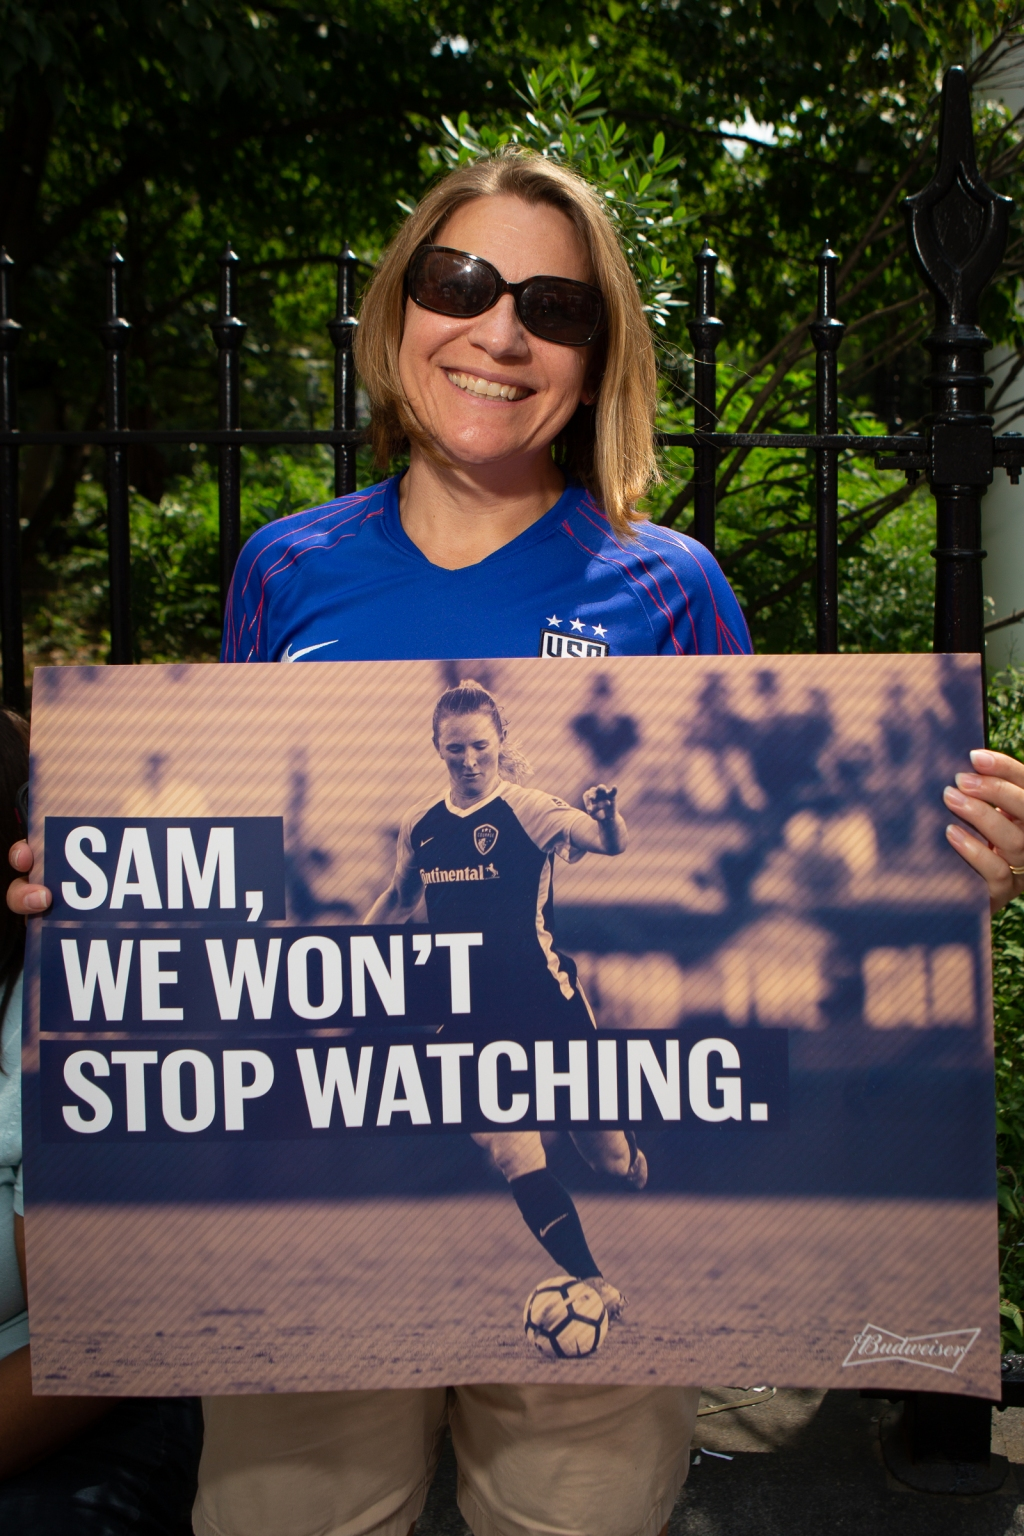 """""""I've been playing sports since I was five, and now my kids playing soccer too, so I wanted to bring them here,"""" says Beth Coultrap, 42, from Glenrock, NJ. """"It's important for them to be a part of women's rights today."""""""